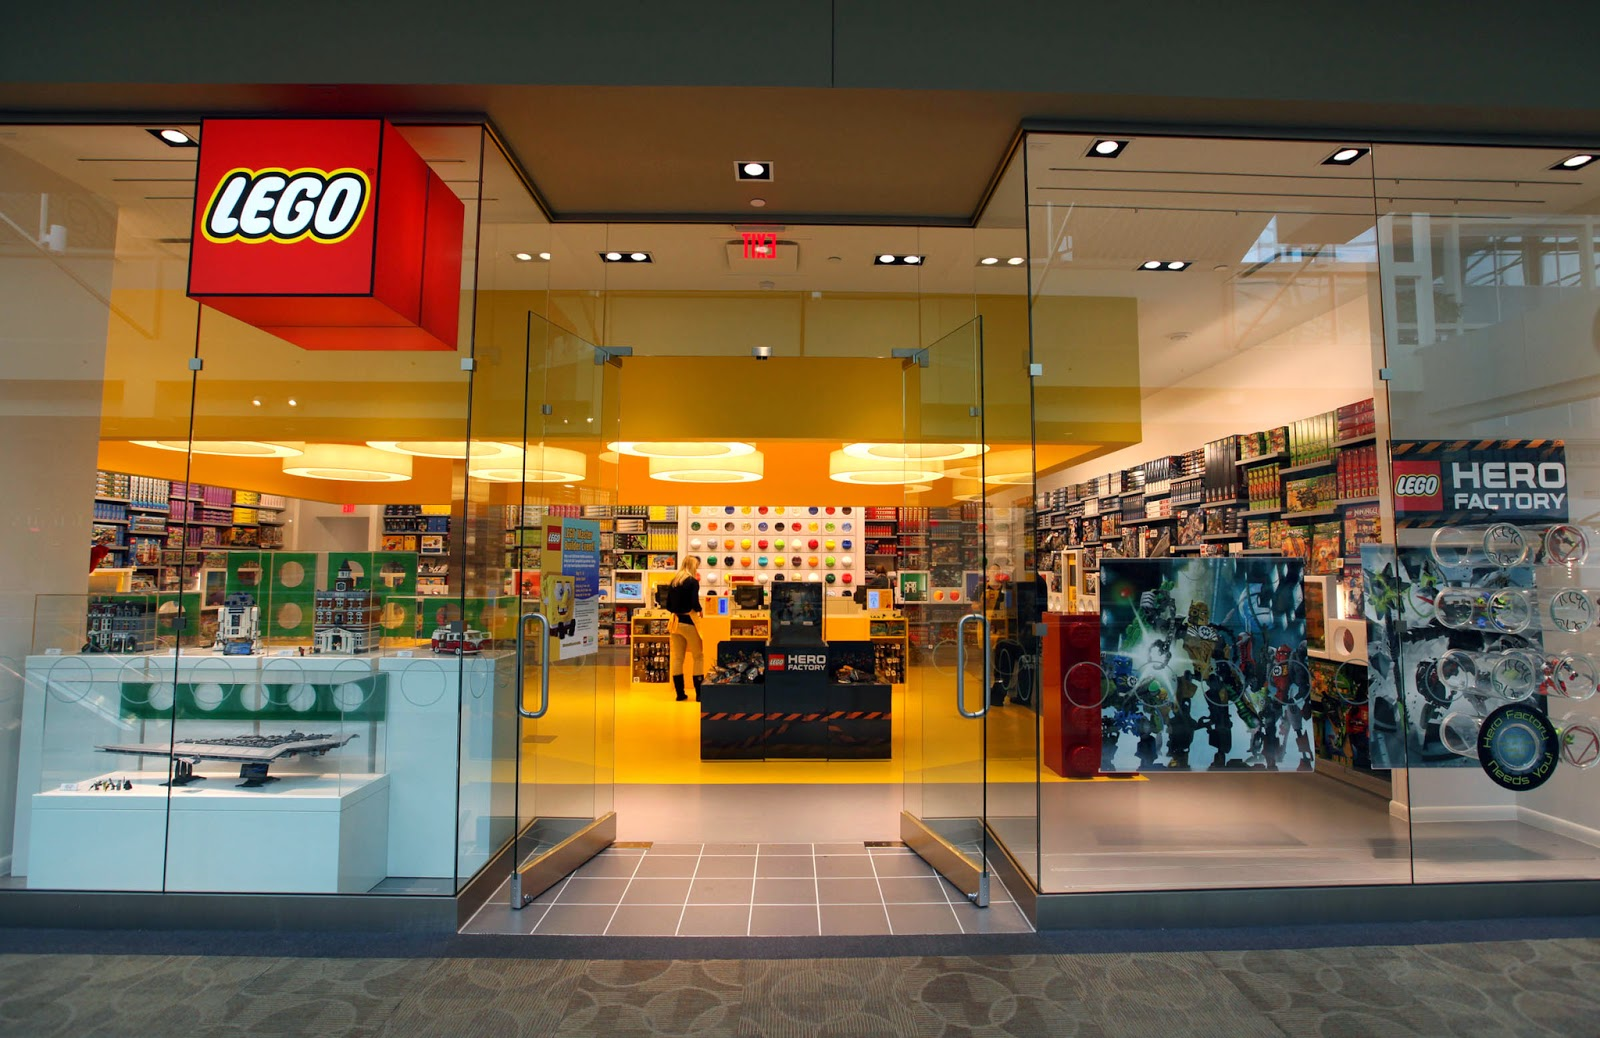 The latest Tweets from LEGO (@LEGO_Group). Hello! You made it to the official LEGO Twitter account. We'll show you around!Account Status: Verified.